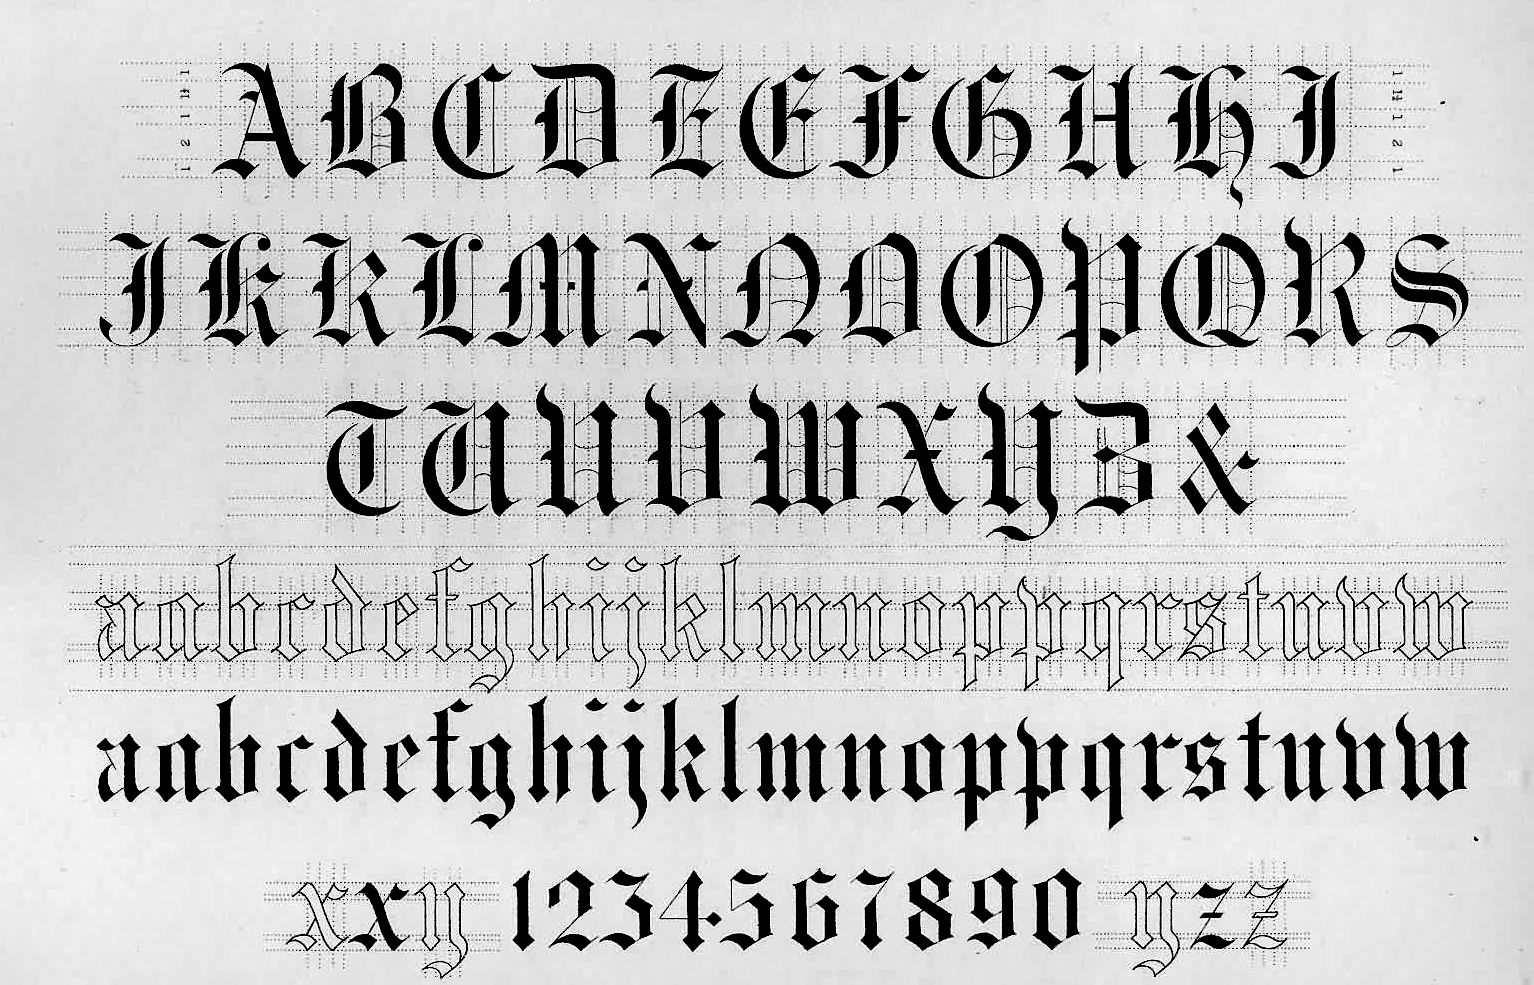 Old English Cursive Fonts | file name: New Specncerian